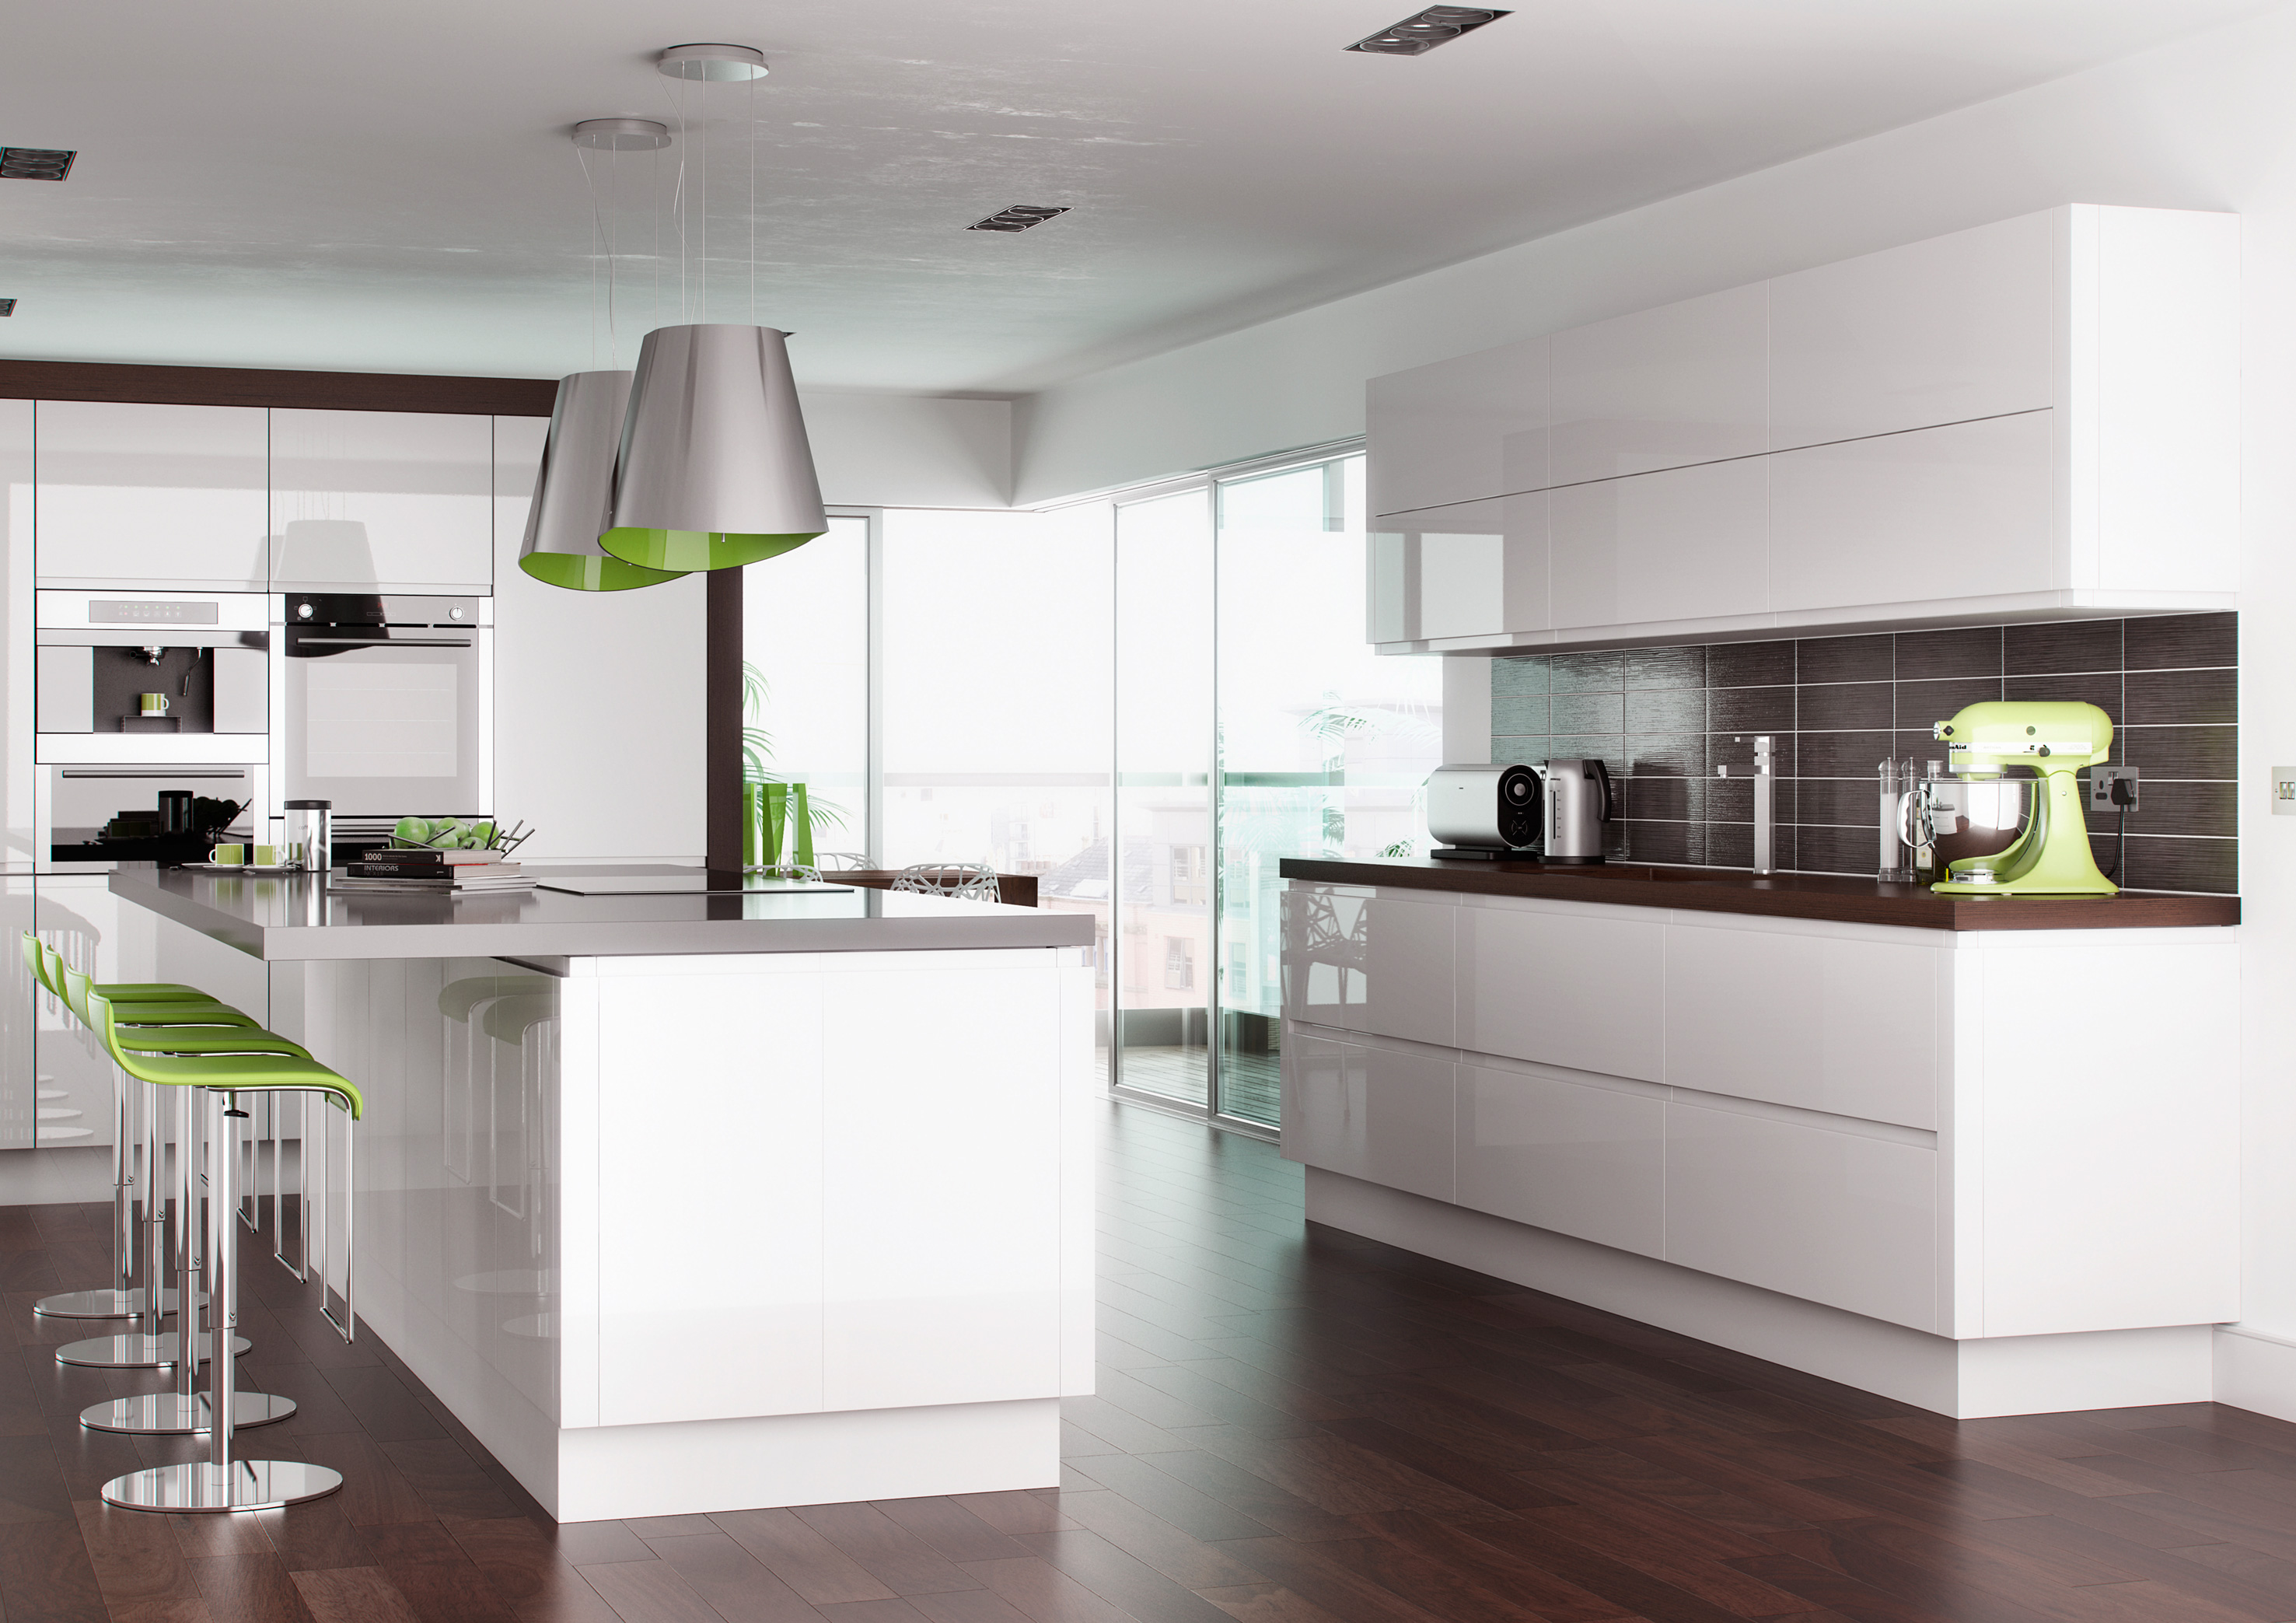 Stylish Handleless Gloss Kitchens from Discount Kitchen Factory